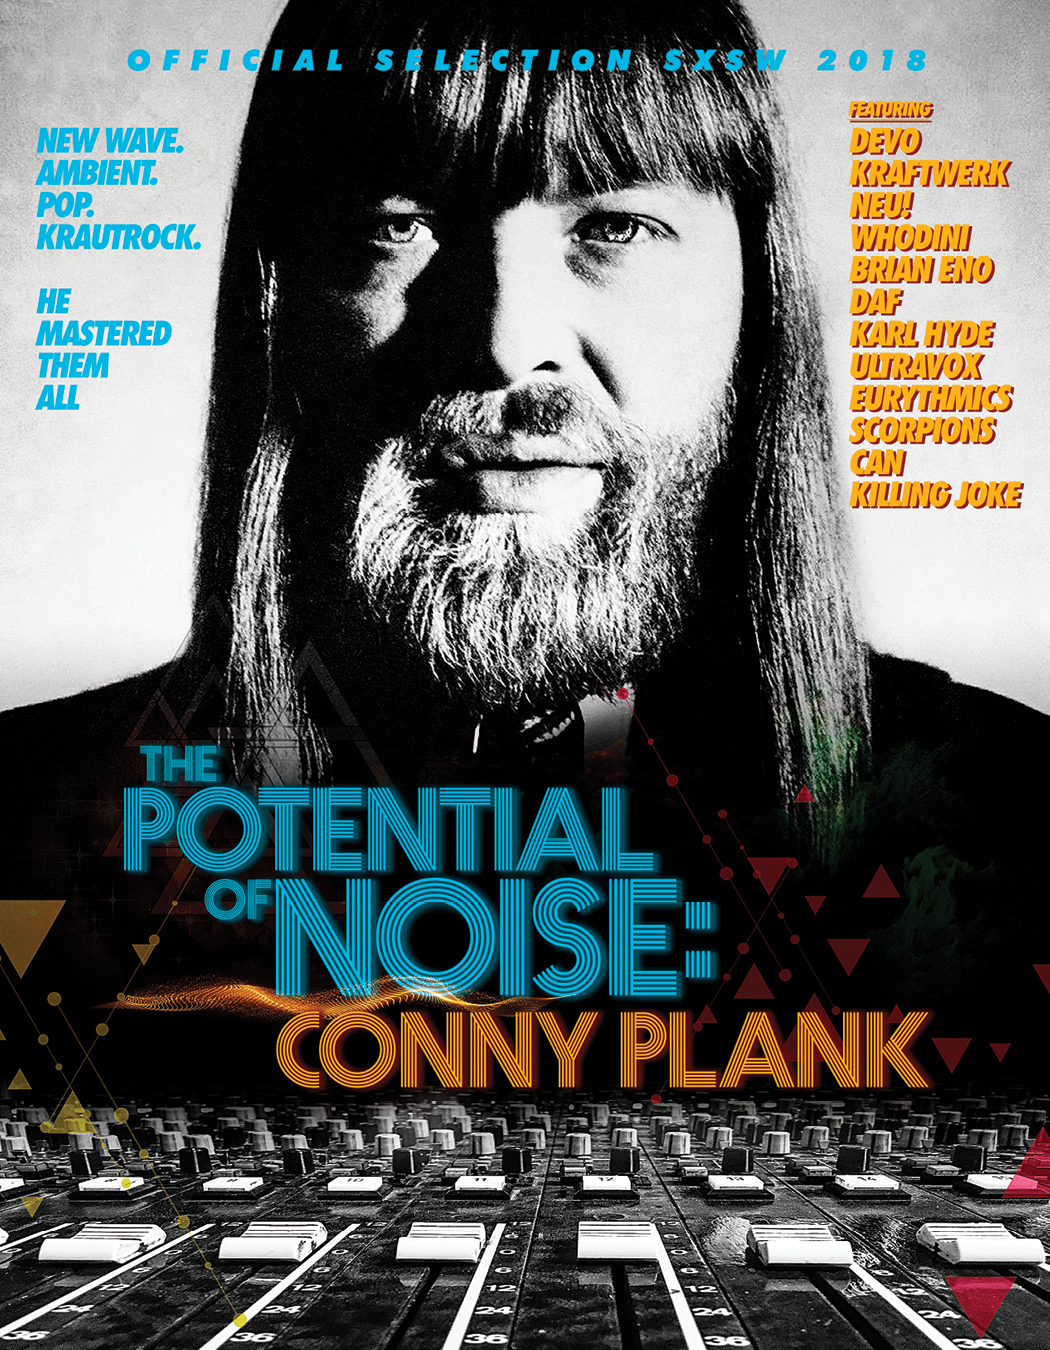 CONNY PLANK - THE POTENTIAL OF NOISE